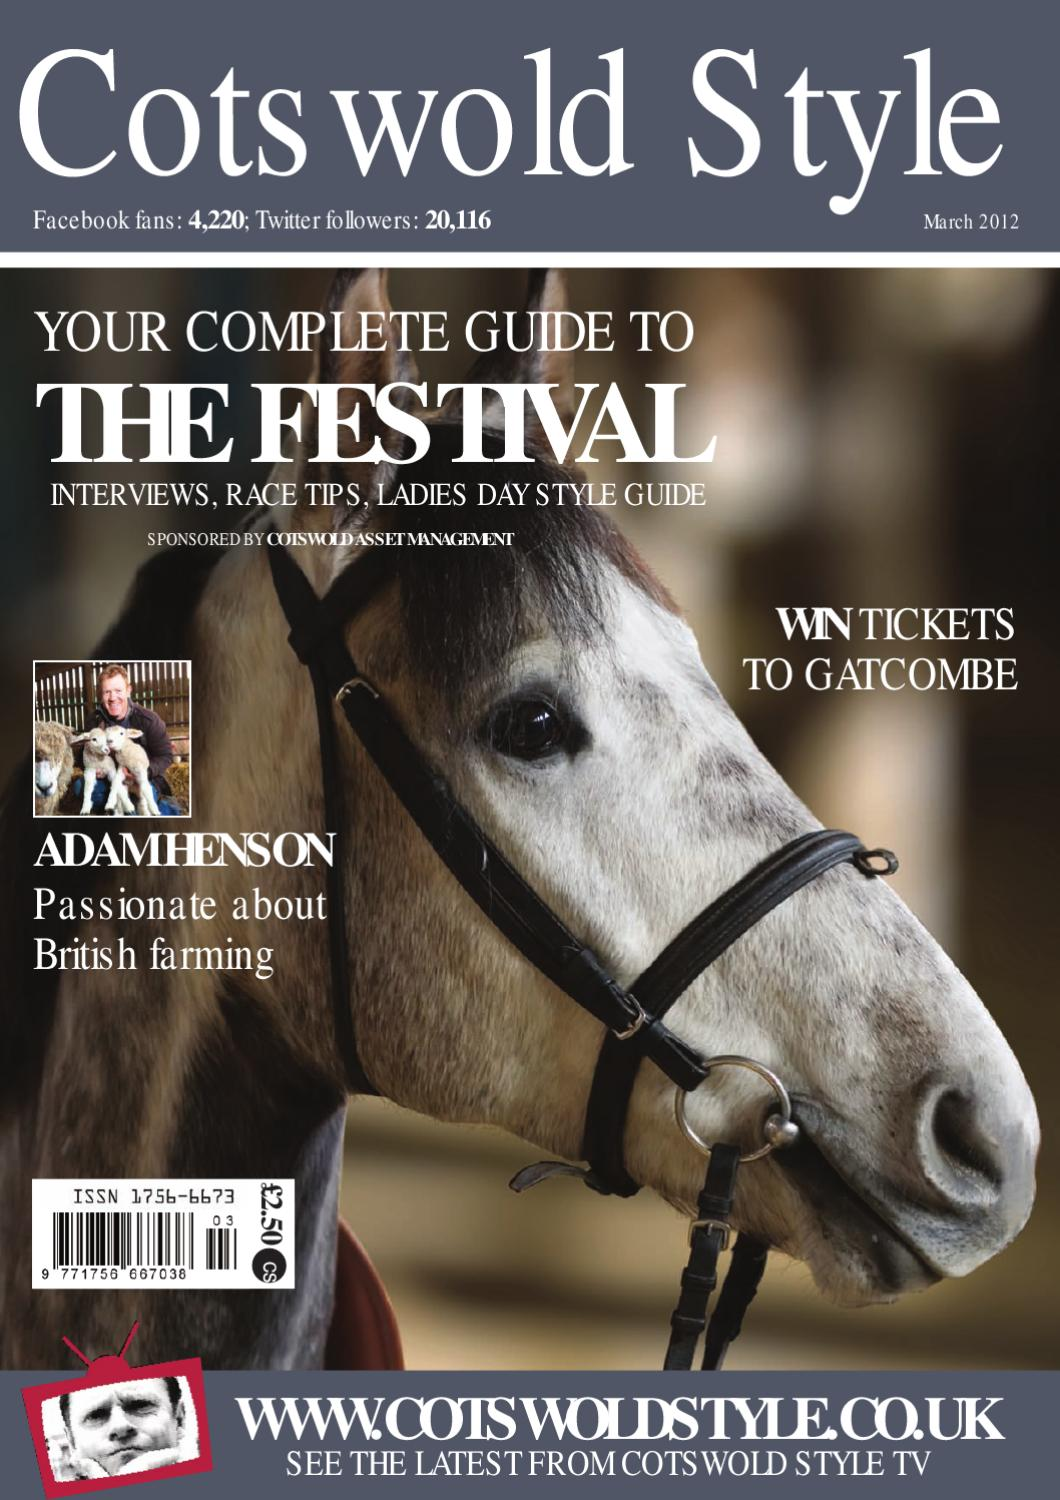 6b2421f46e6c Cotswold Style March 2012 by Cotswold Style Ltd - issuu